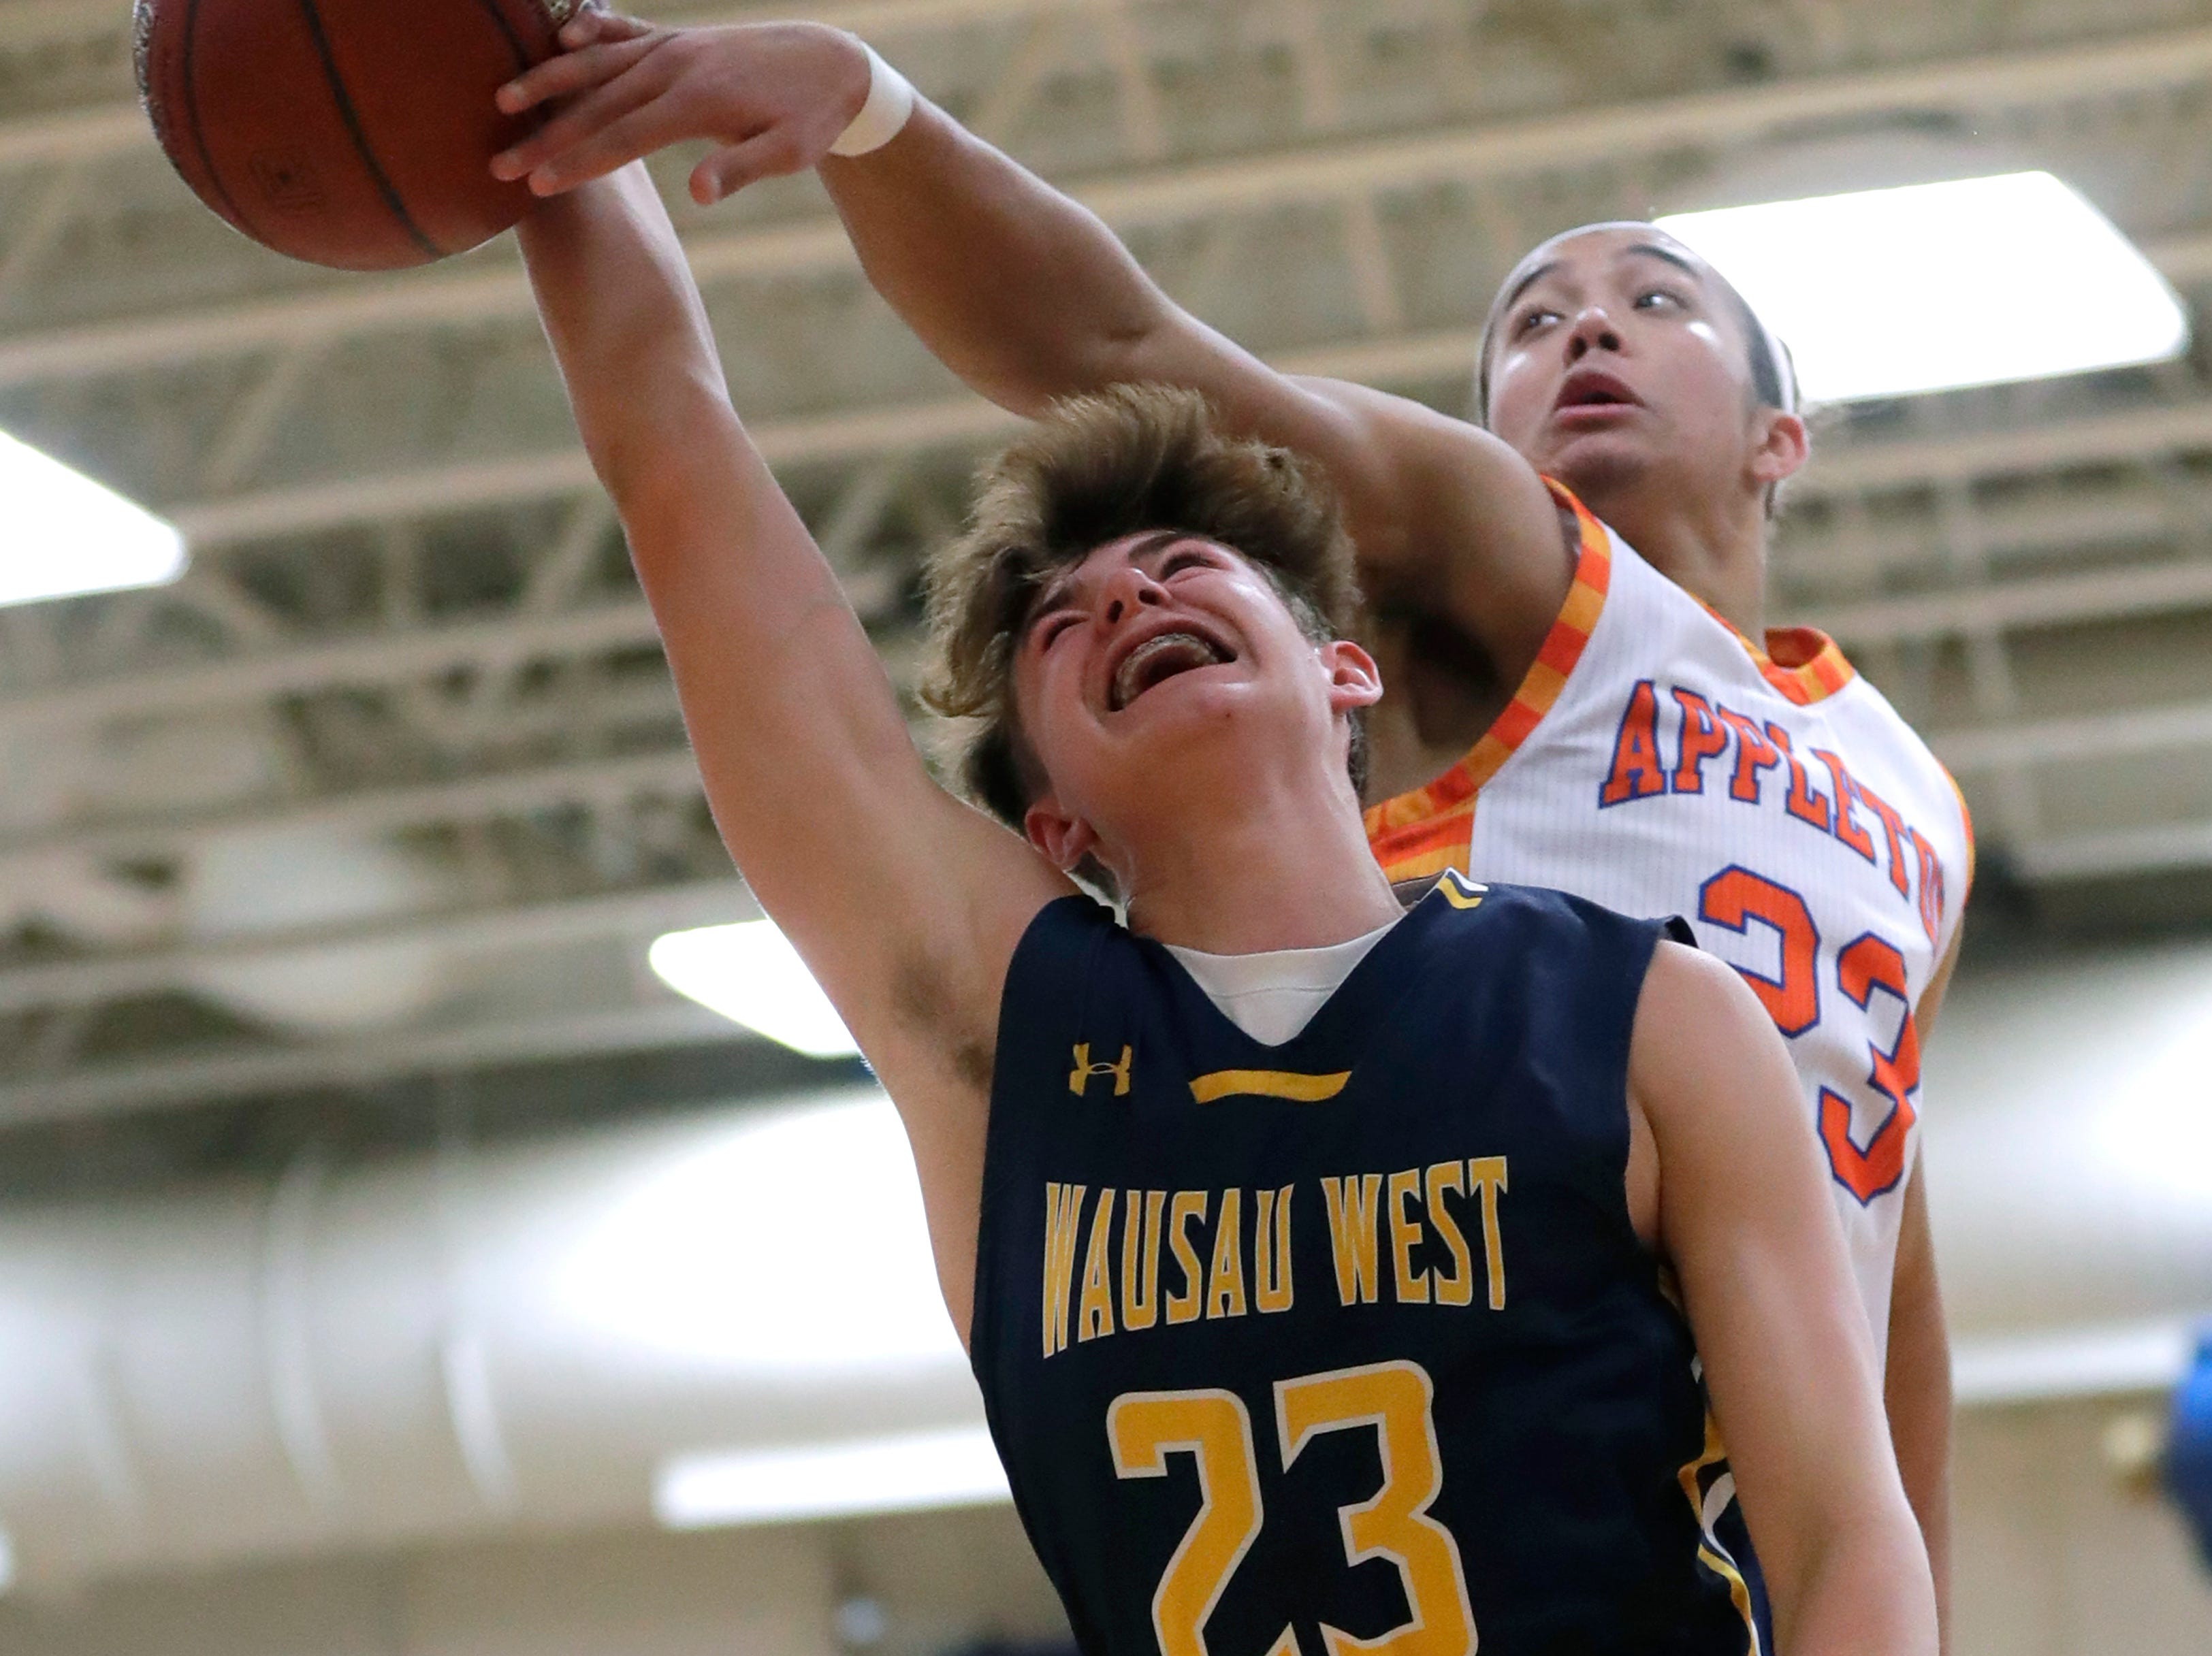 Appleton West  High School's Bubba Thompson (23) fouls Wausau West High School's Logan White (23) as he puts up a shot during their boys basketball game Friday, December 28, 2018, in Appleton, Wis. Dan Powers/USA TODAY NETWORK-Wisconsin